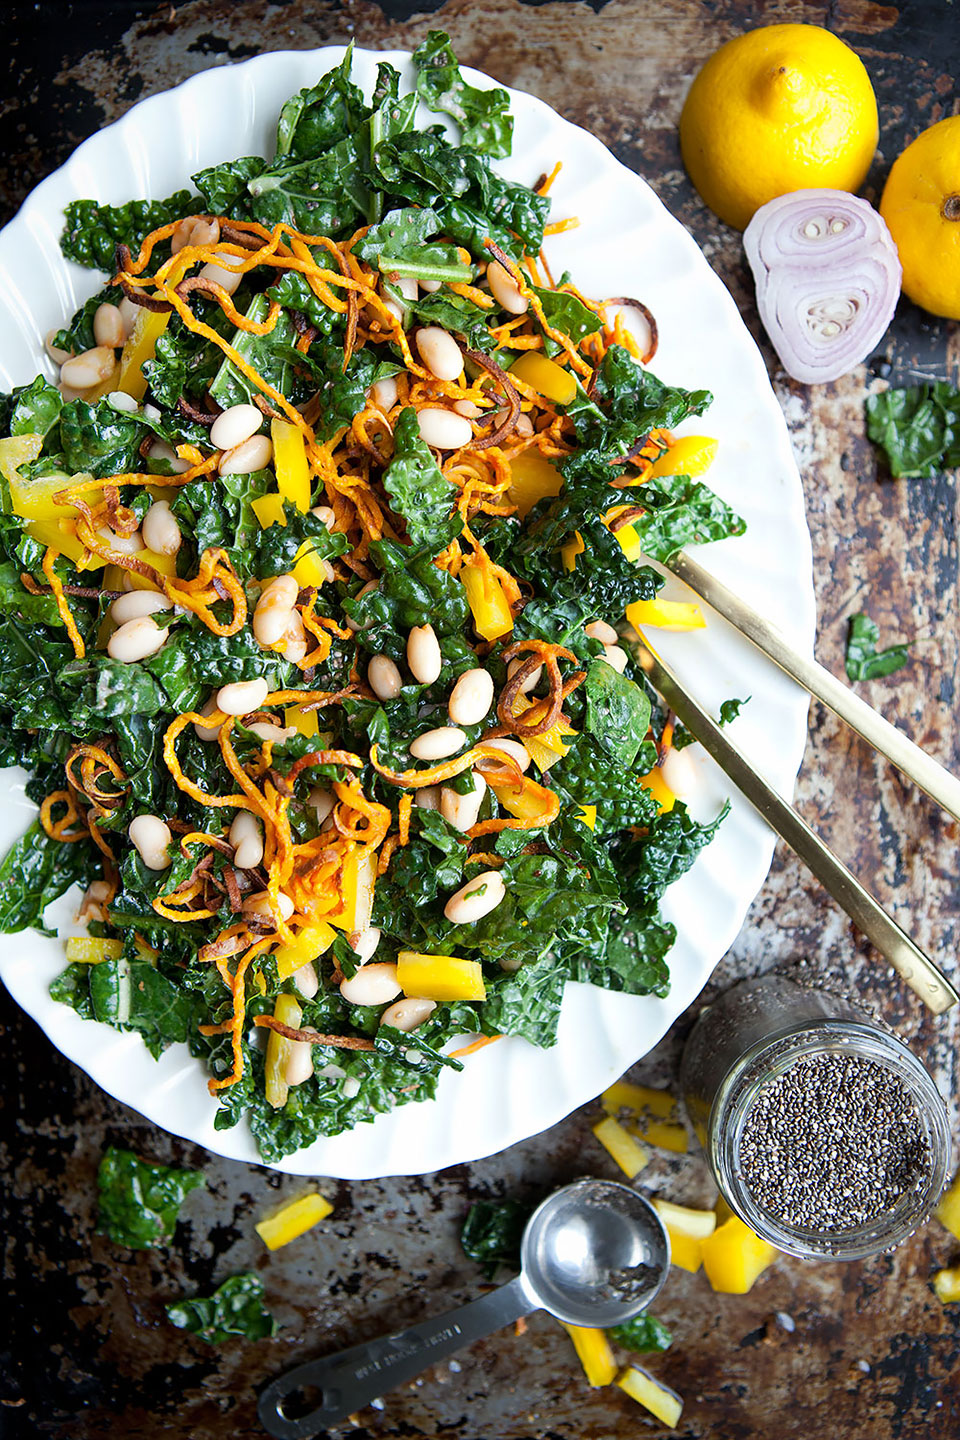 Kale Salad with Spicy Cannellini Beans and Lemon Chia Dressing | Gluten-free and vegan. | Loveleaf Co.